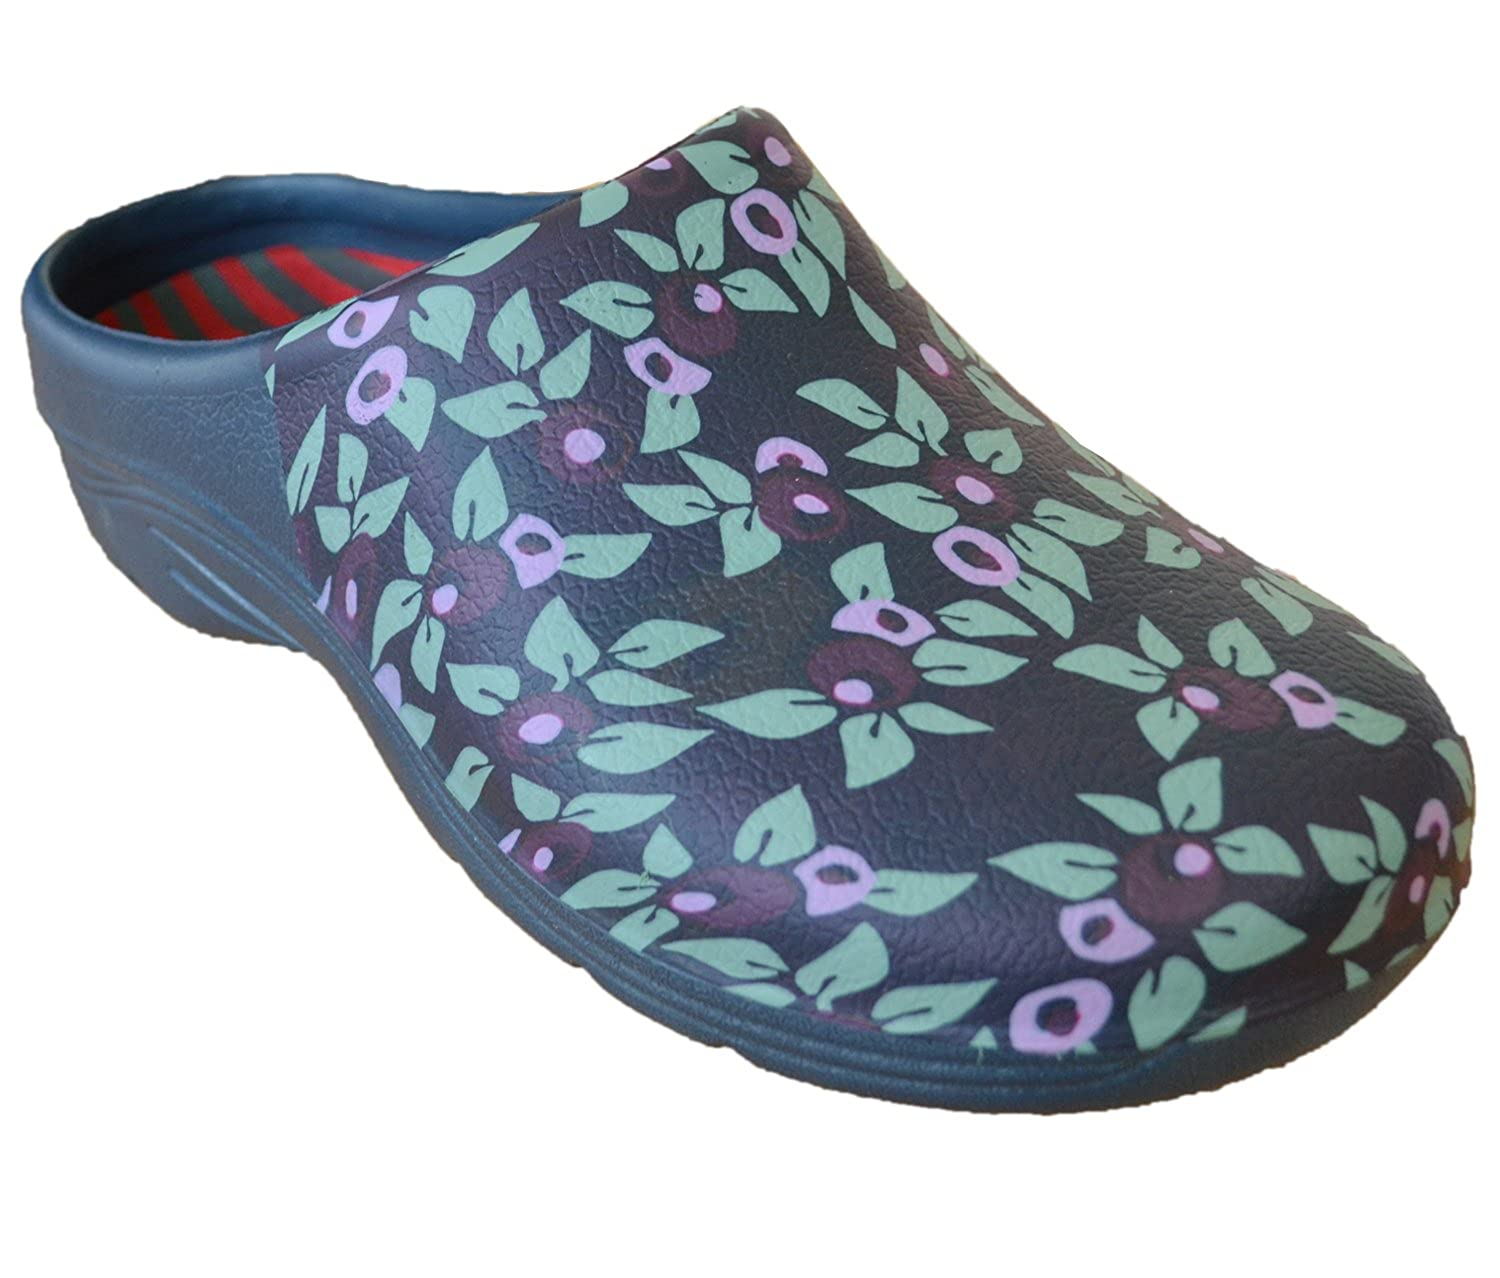 5c64b3fd57cf Womens Ladies Footwear Gardening Clogs Green Plum Floral Print With Open  Back  Amazon.co.uk  Shoes   Bags